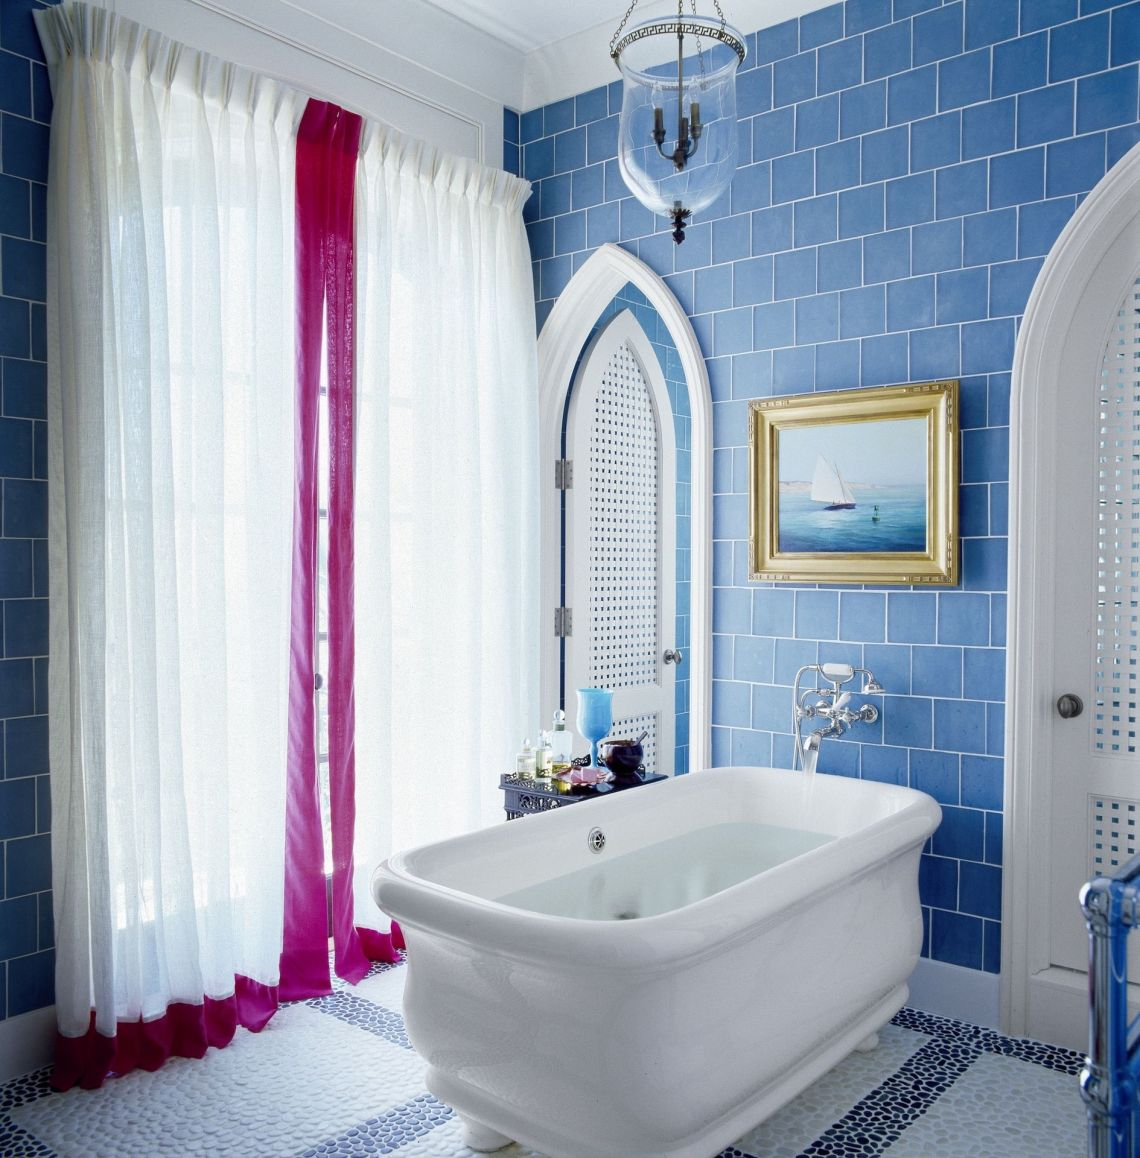 Top Bathroom Ideas for 2021 - What Trends Are In for Bathrooms